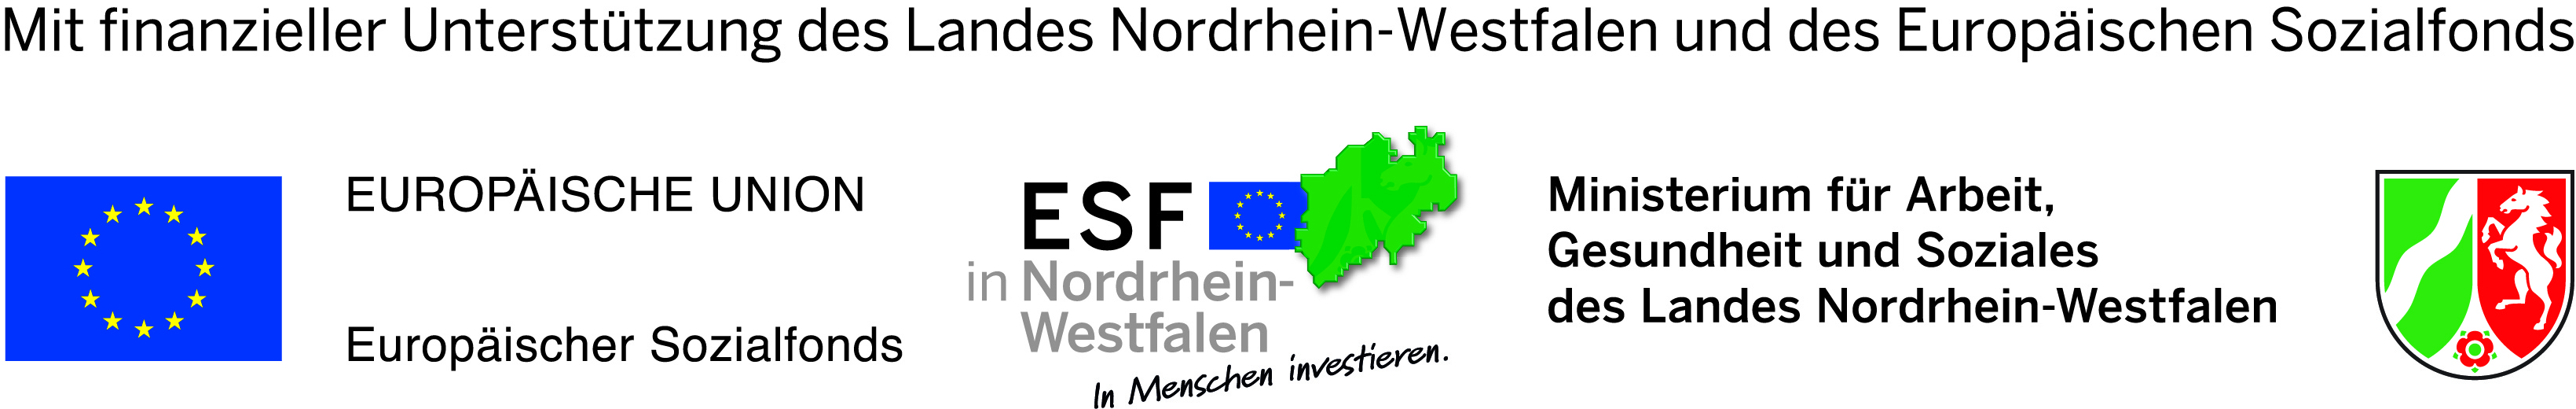 https://www.mags.nrw/sites/default/files/assets/images/eu_esf-nrw_mags_fh_4c-logo.jpg